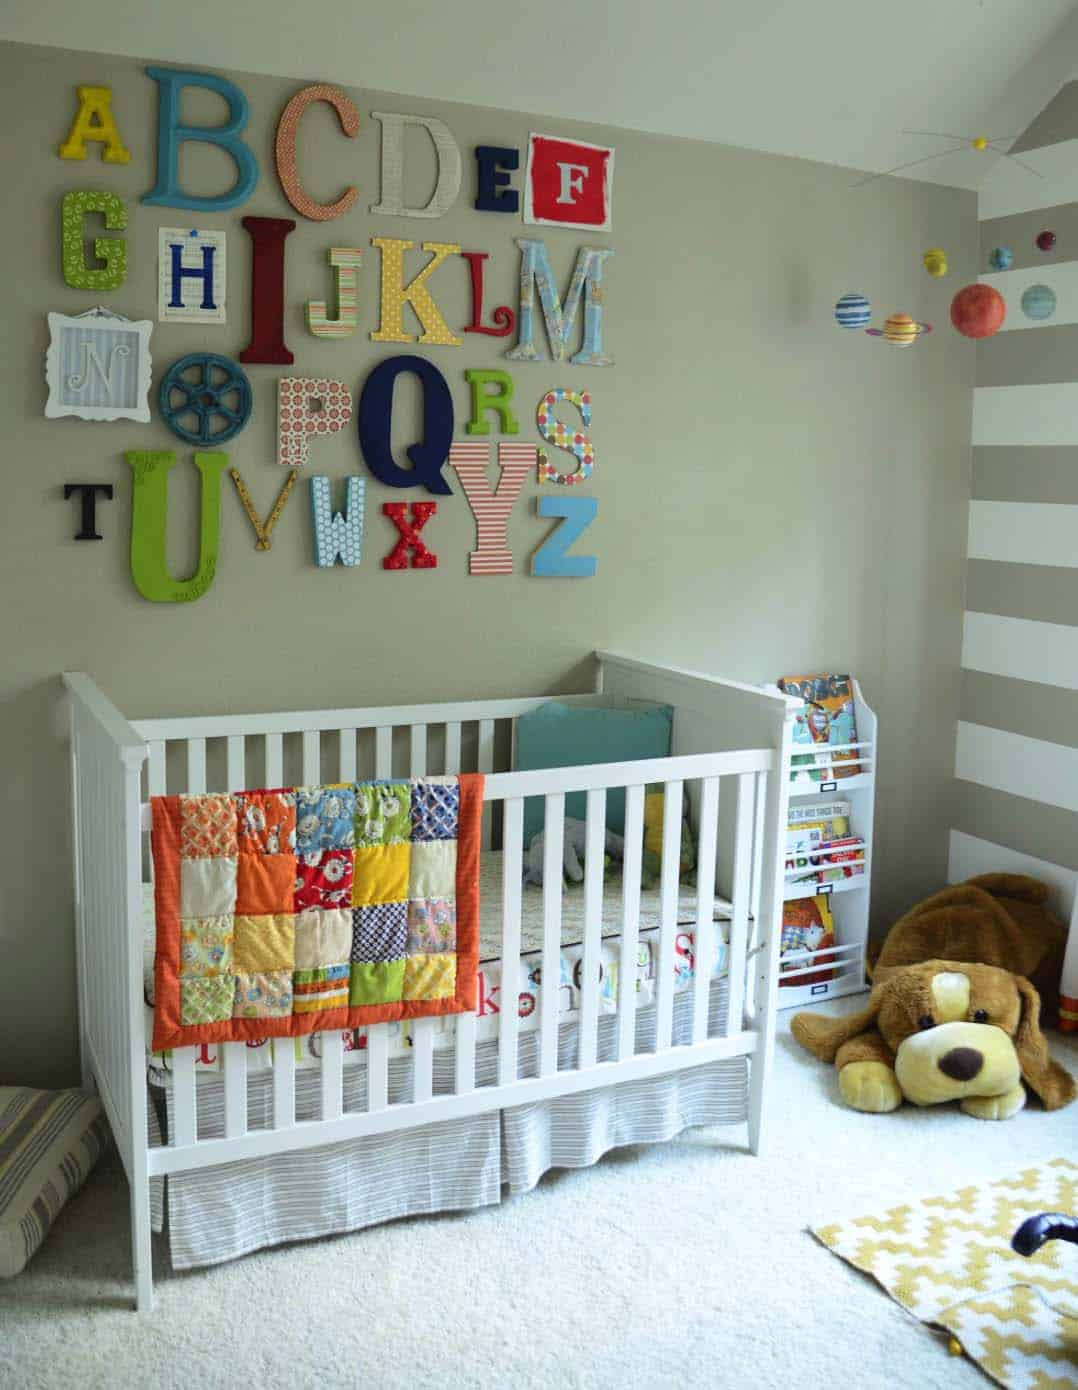 Stylish Nursery Decorating Ideas-20-1 Kindesign